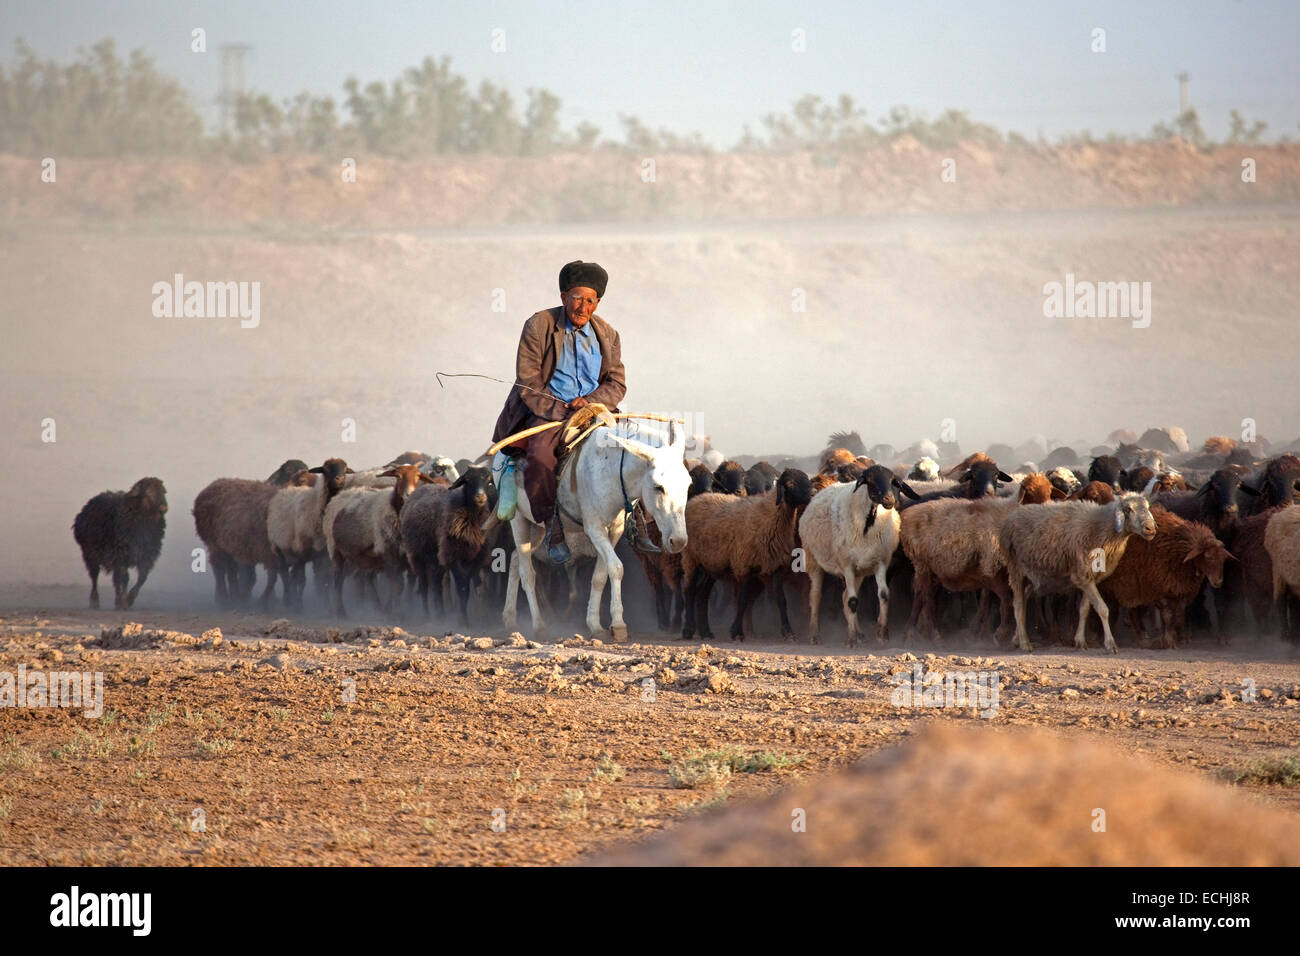 Turkmen shepherd riding on donkey while herding flock of sheep in the Karakum desert in Turkmenistan - Stock Image